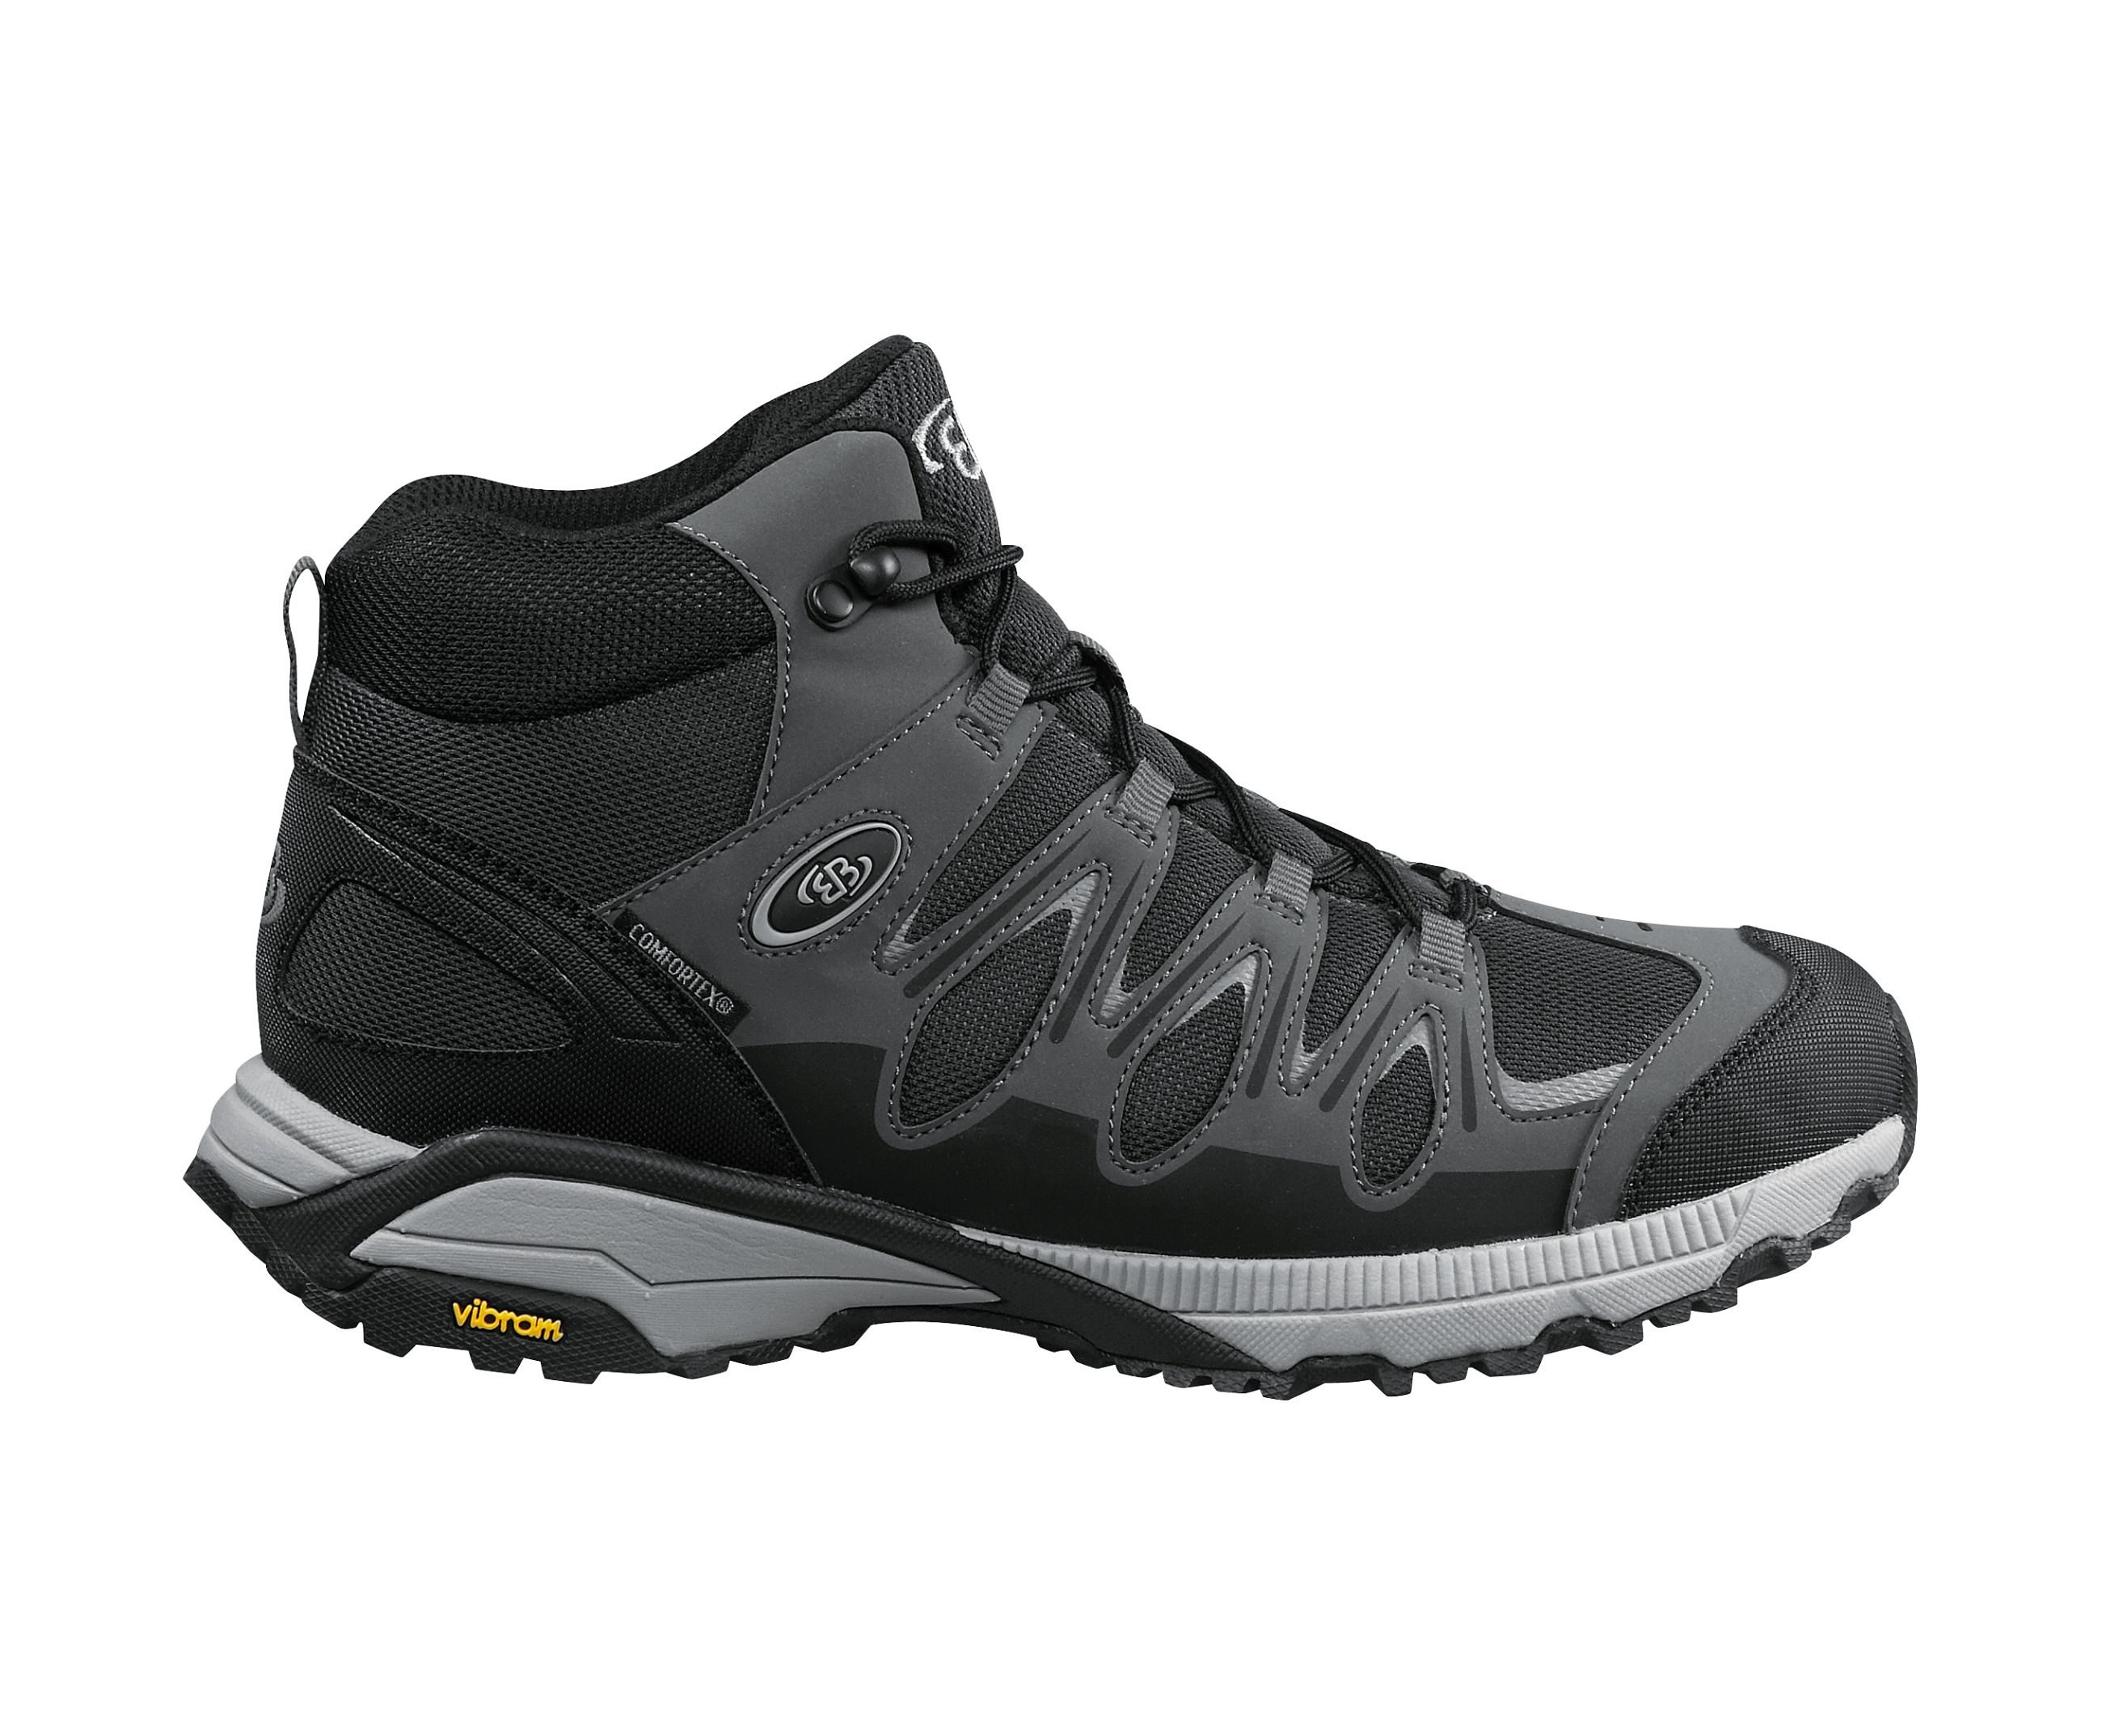 Brütting Outdoorstiefel EXPEDITION MID kaufen  schwarz#ft5_slash#grau